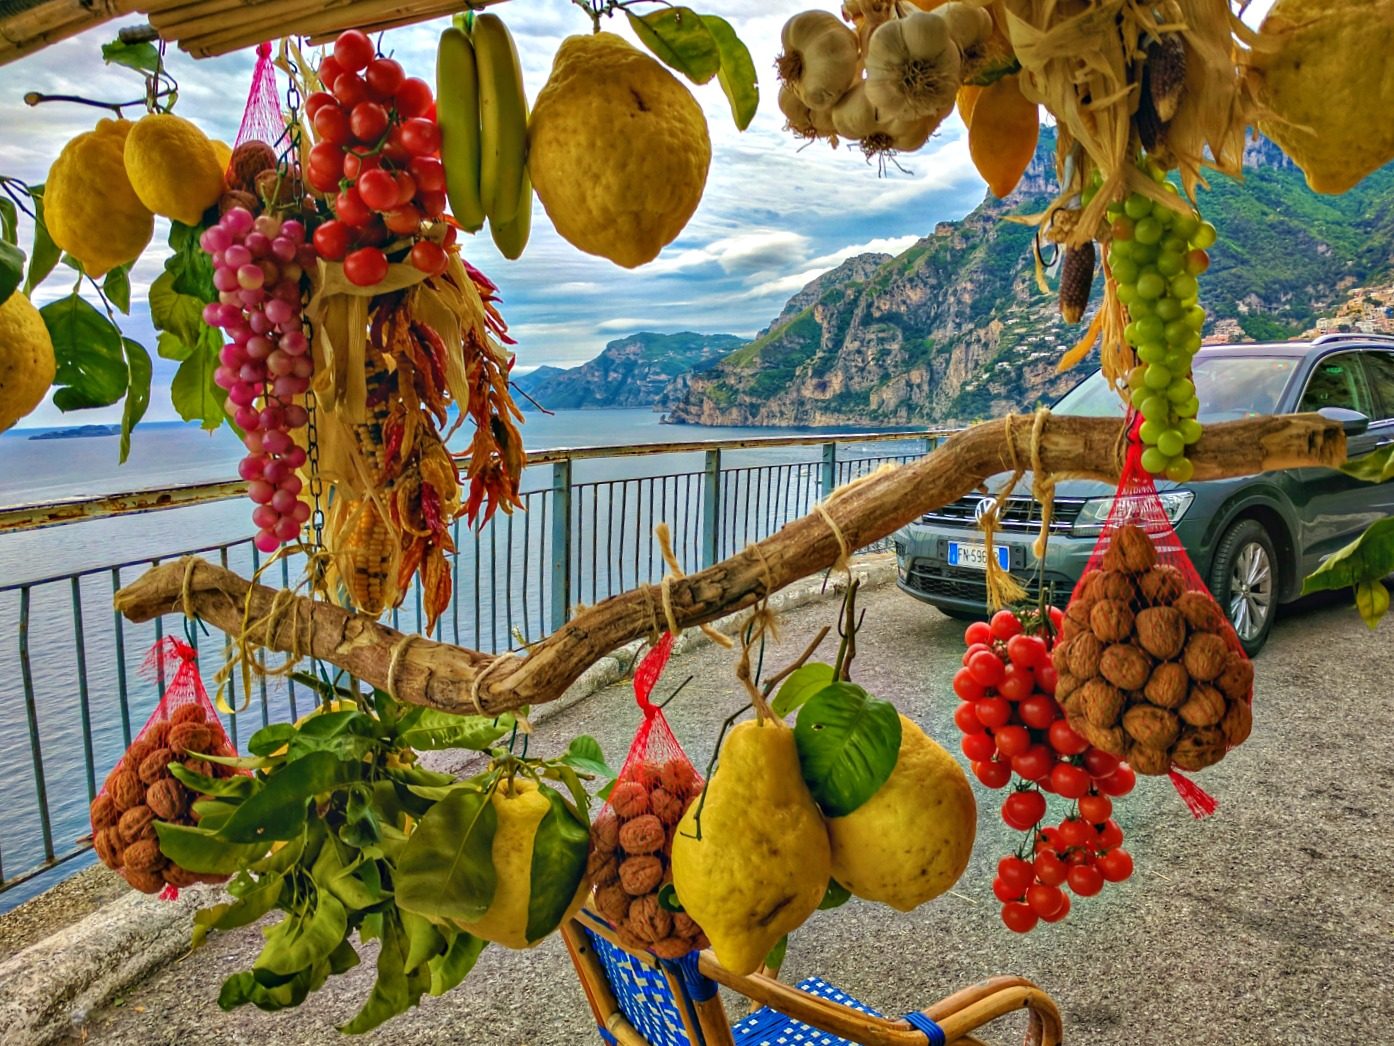 Views of the Amalfi Coast framed with hanging fruit.